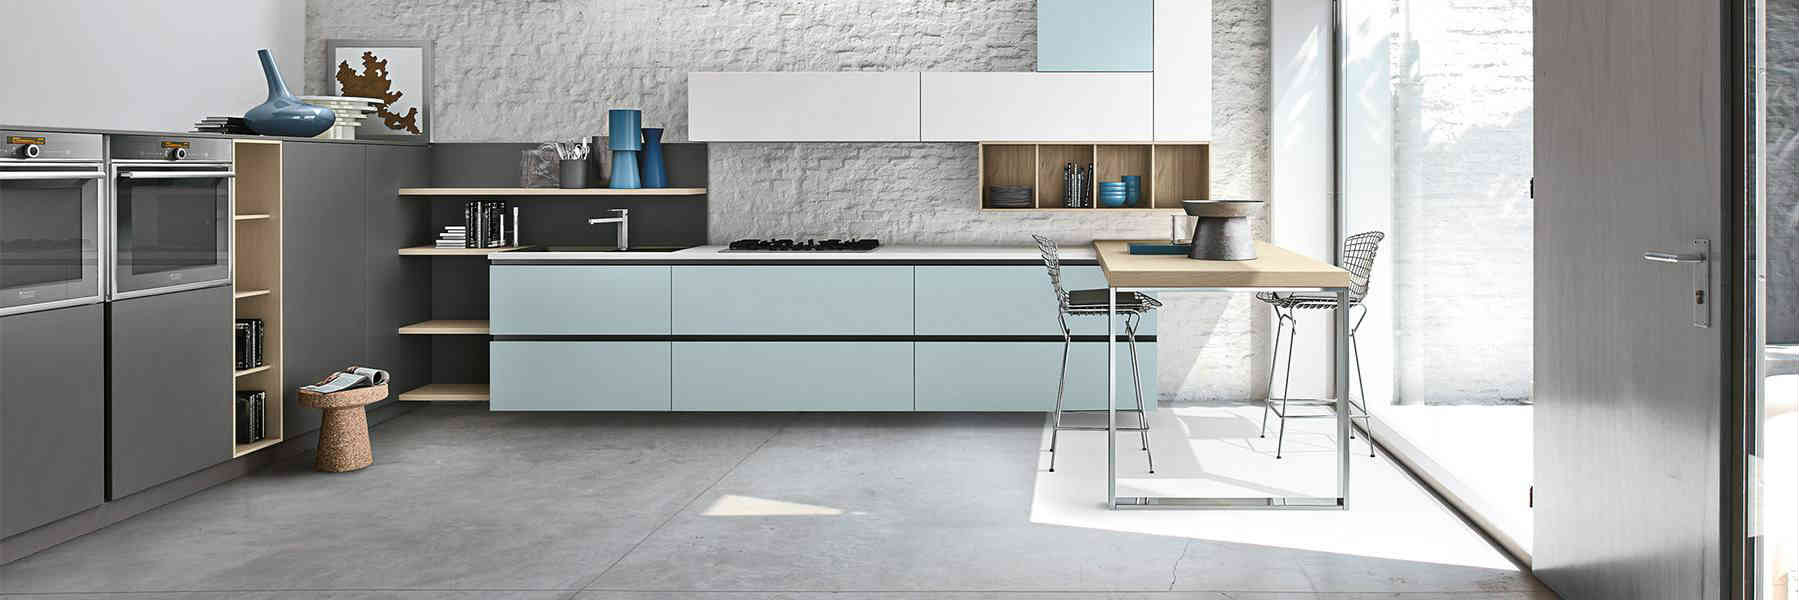 Groovy Luxury Modern Kitchen Designs Sydney Sydney Kitchens Home Interior And Landscaping Mentranervesignezvosmurscom